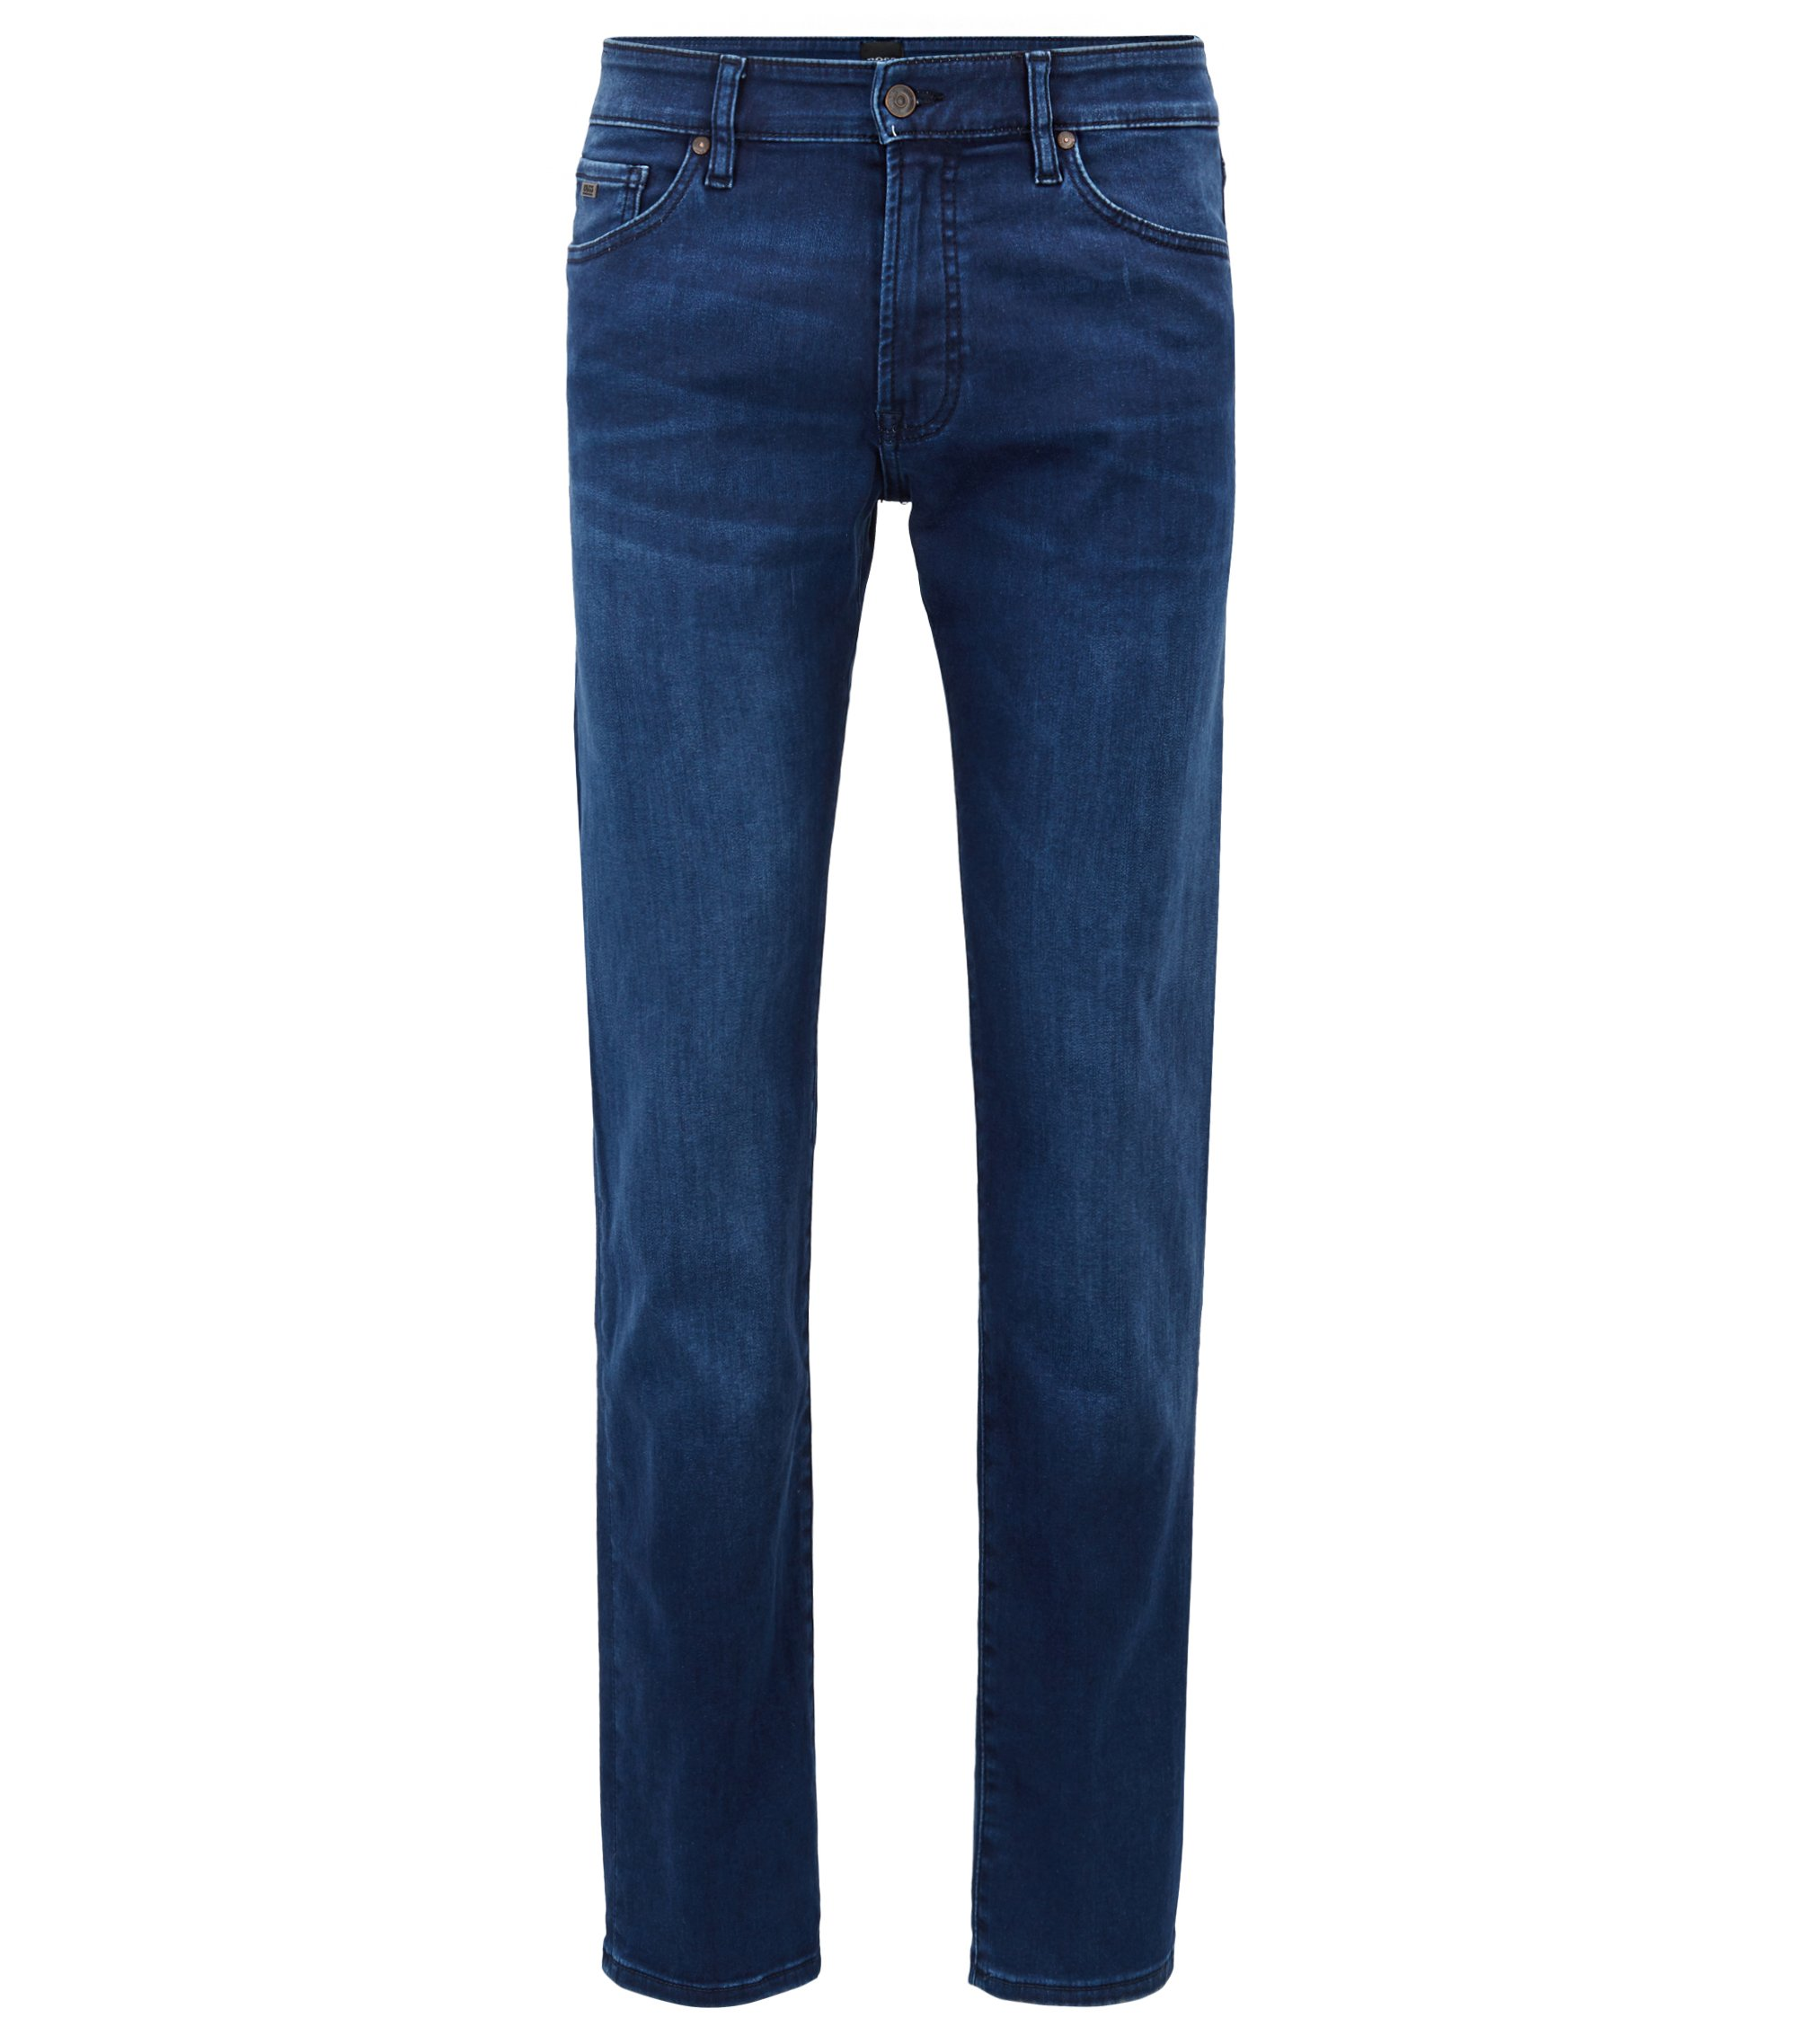 Regular-Fit Jeans aus Super-Stretch-Denim mit Satin-Effekt, Dunkelblau